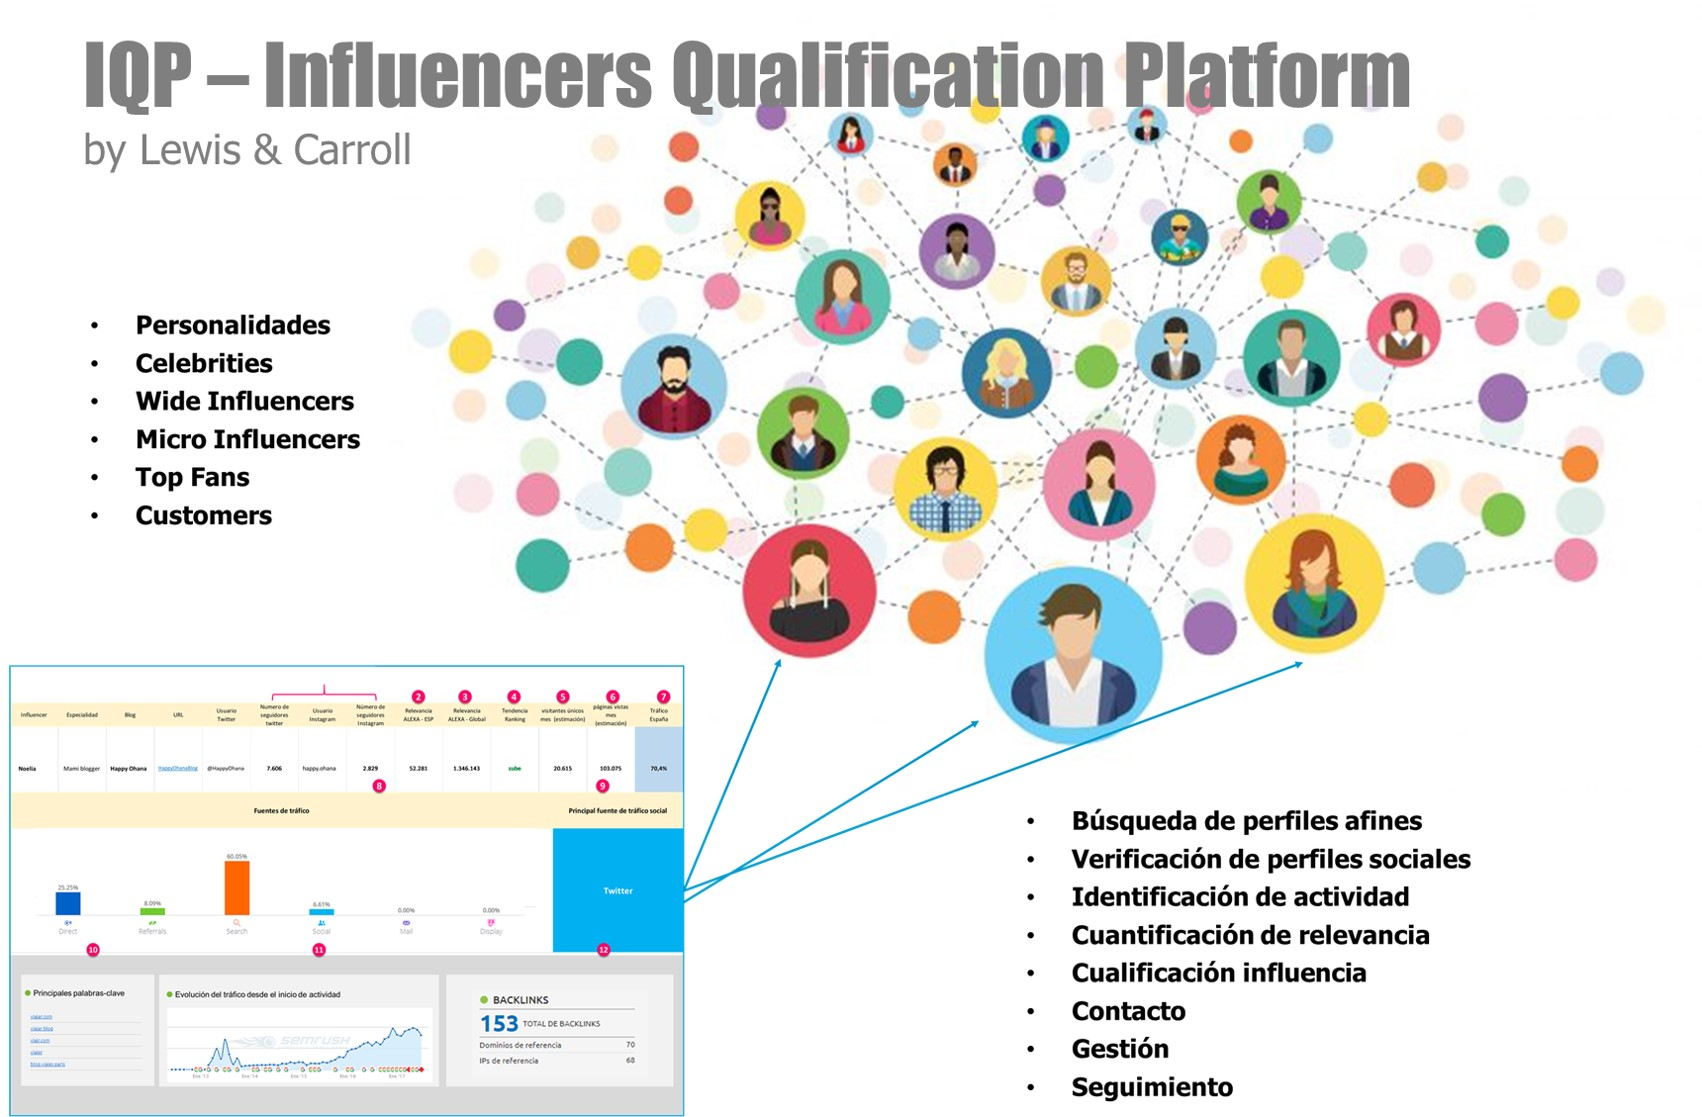 Influencers Qualification Platform by Lewis & Carroll